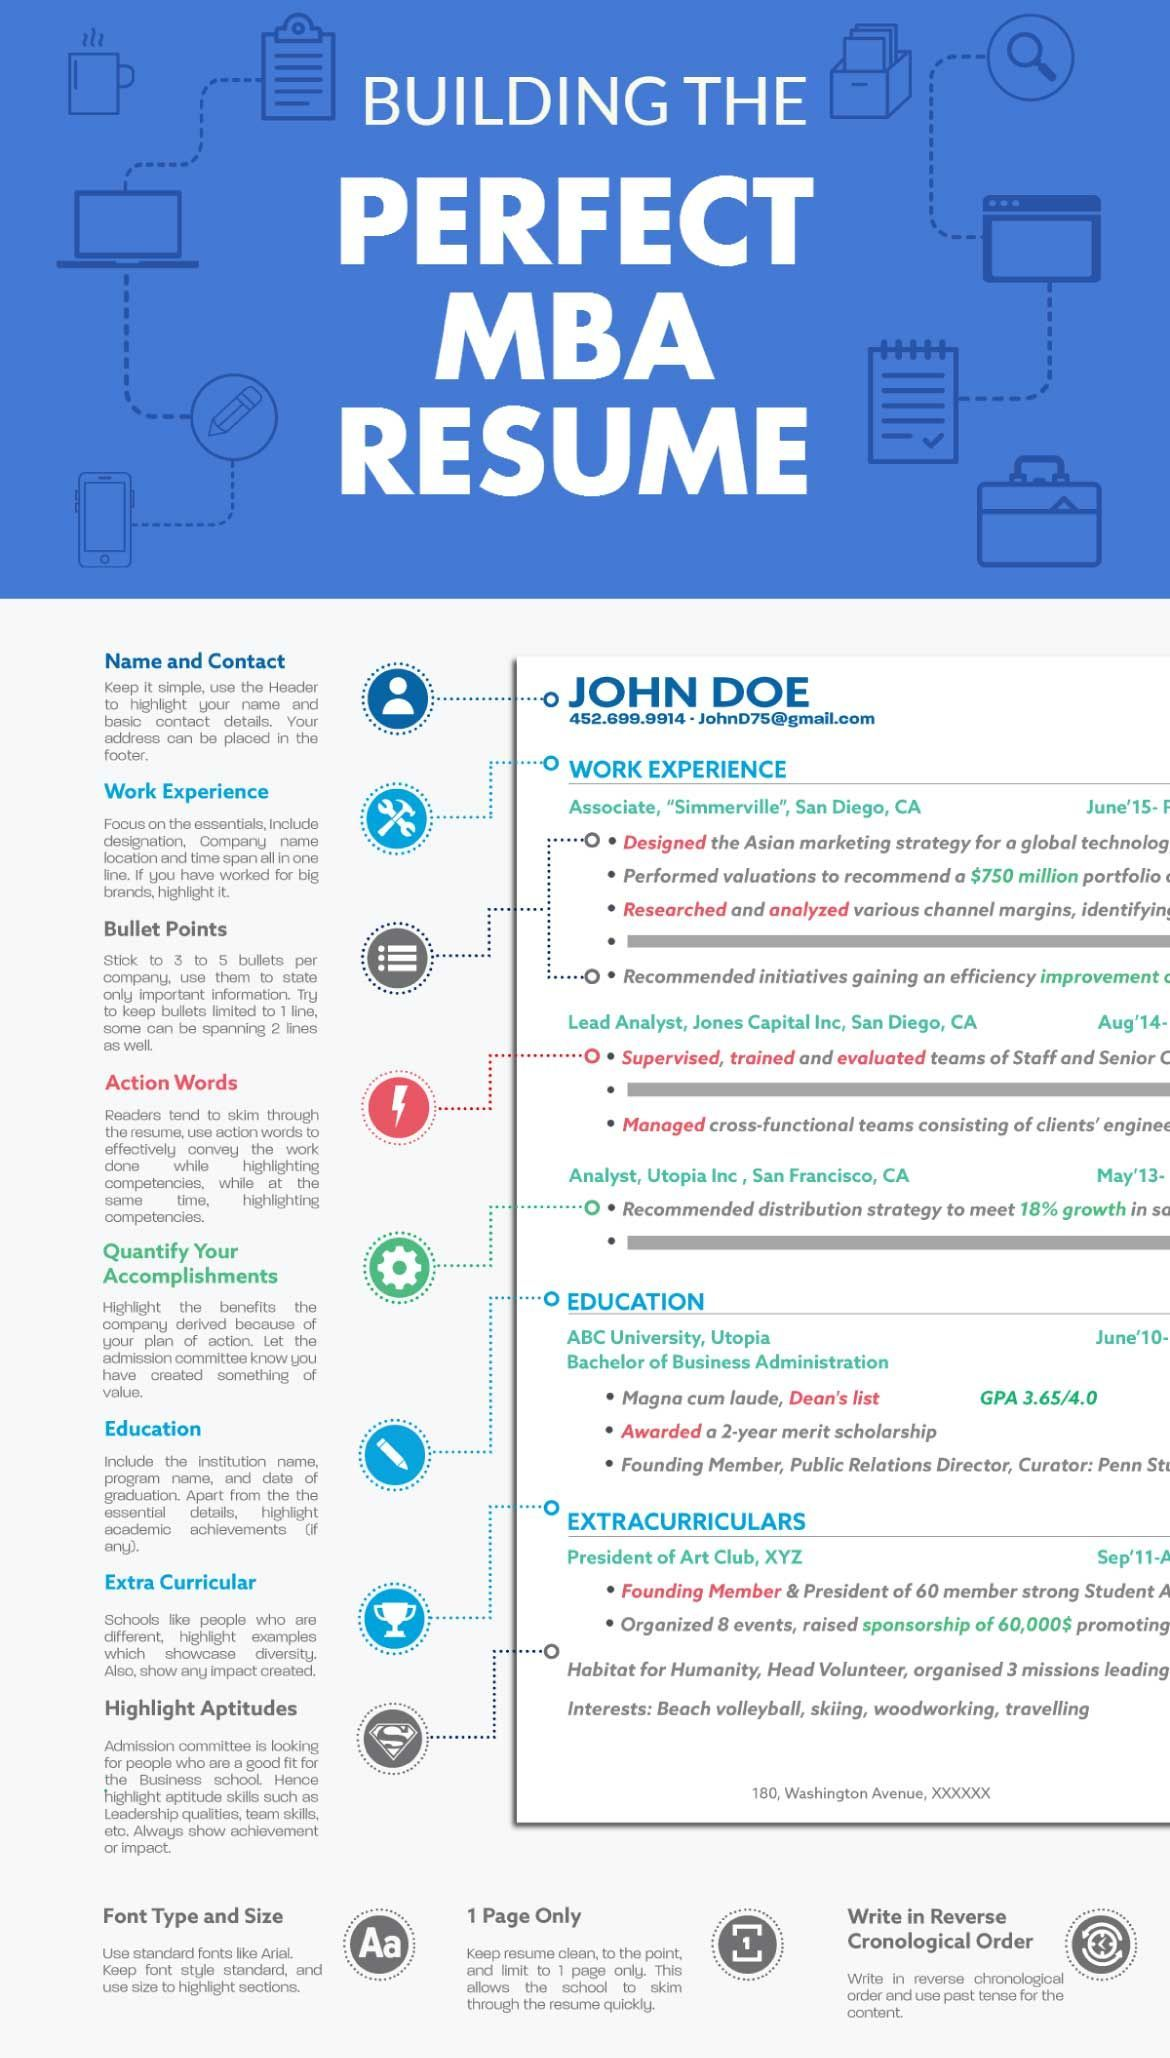 10 Steps Towards Creating The Perfect Mba Resume Infographic With